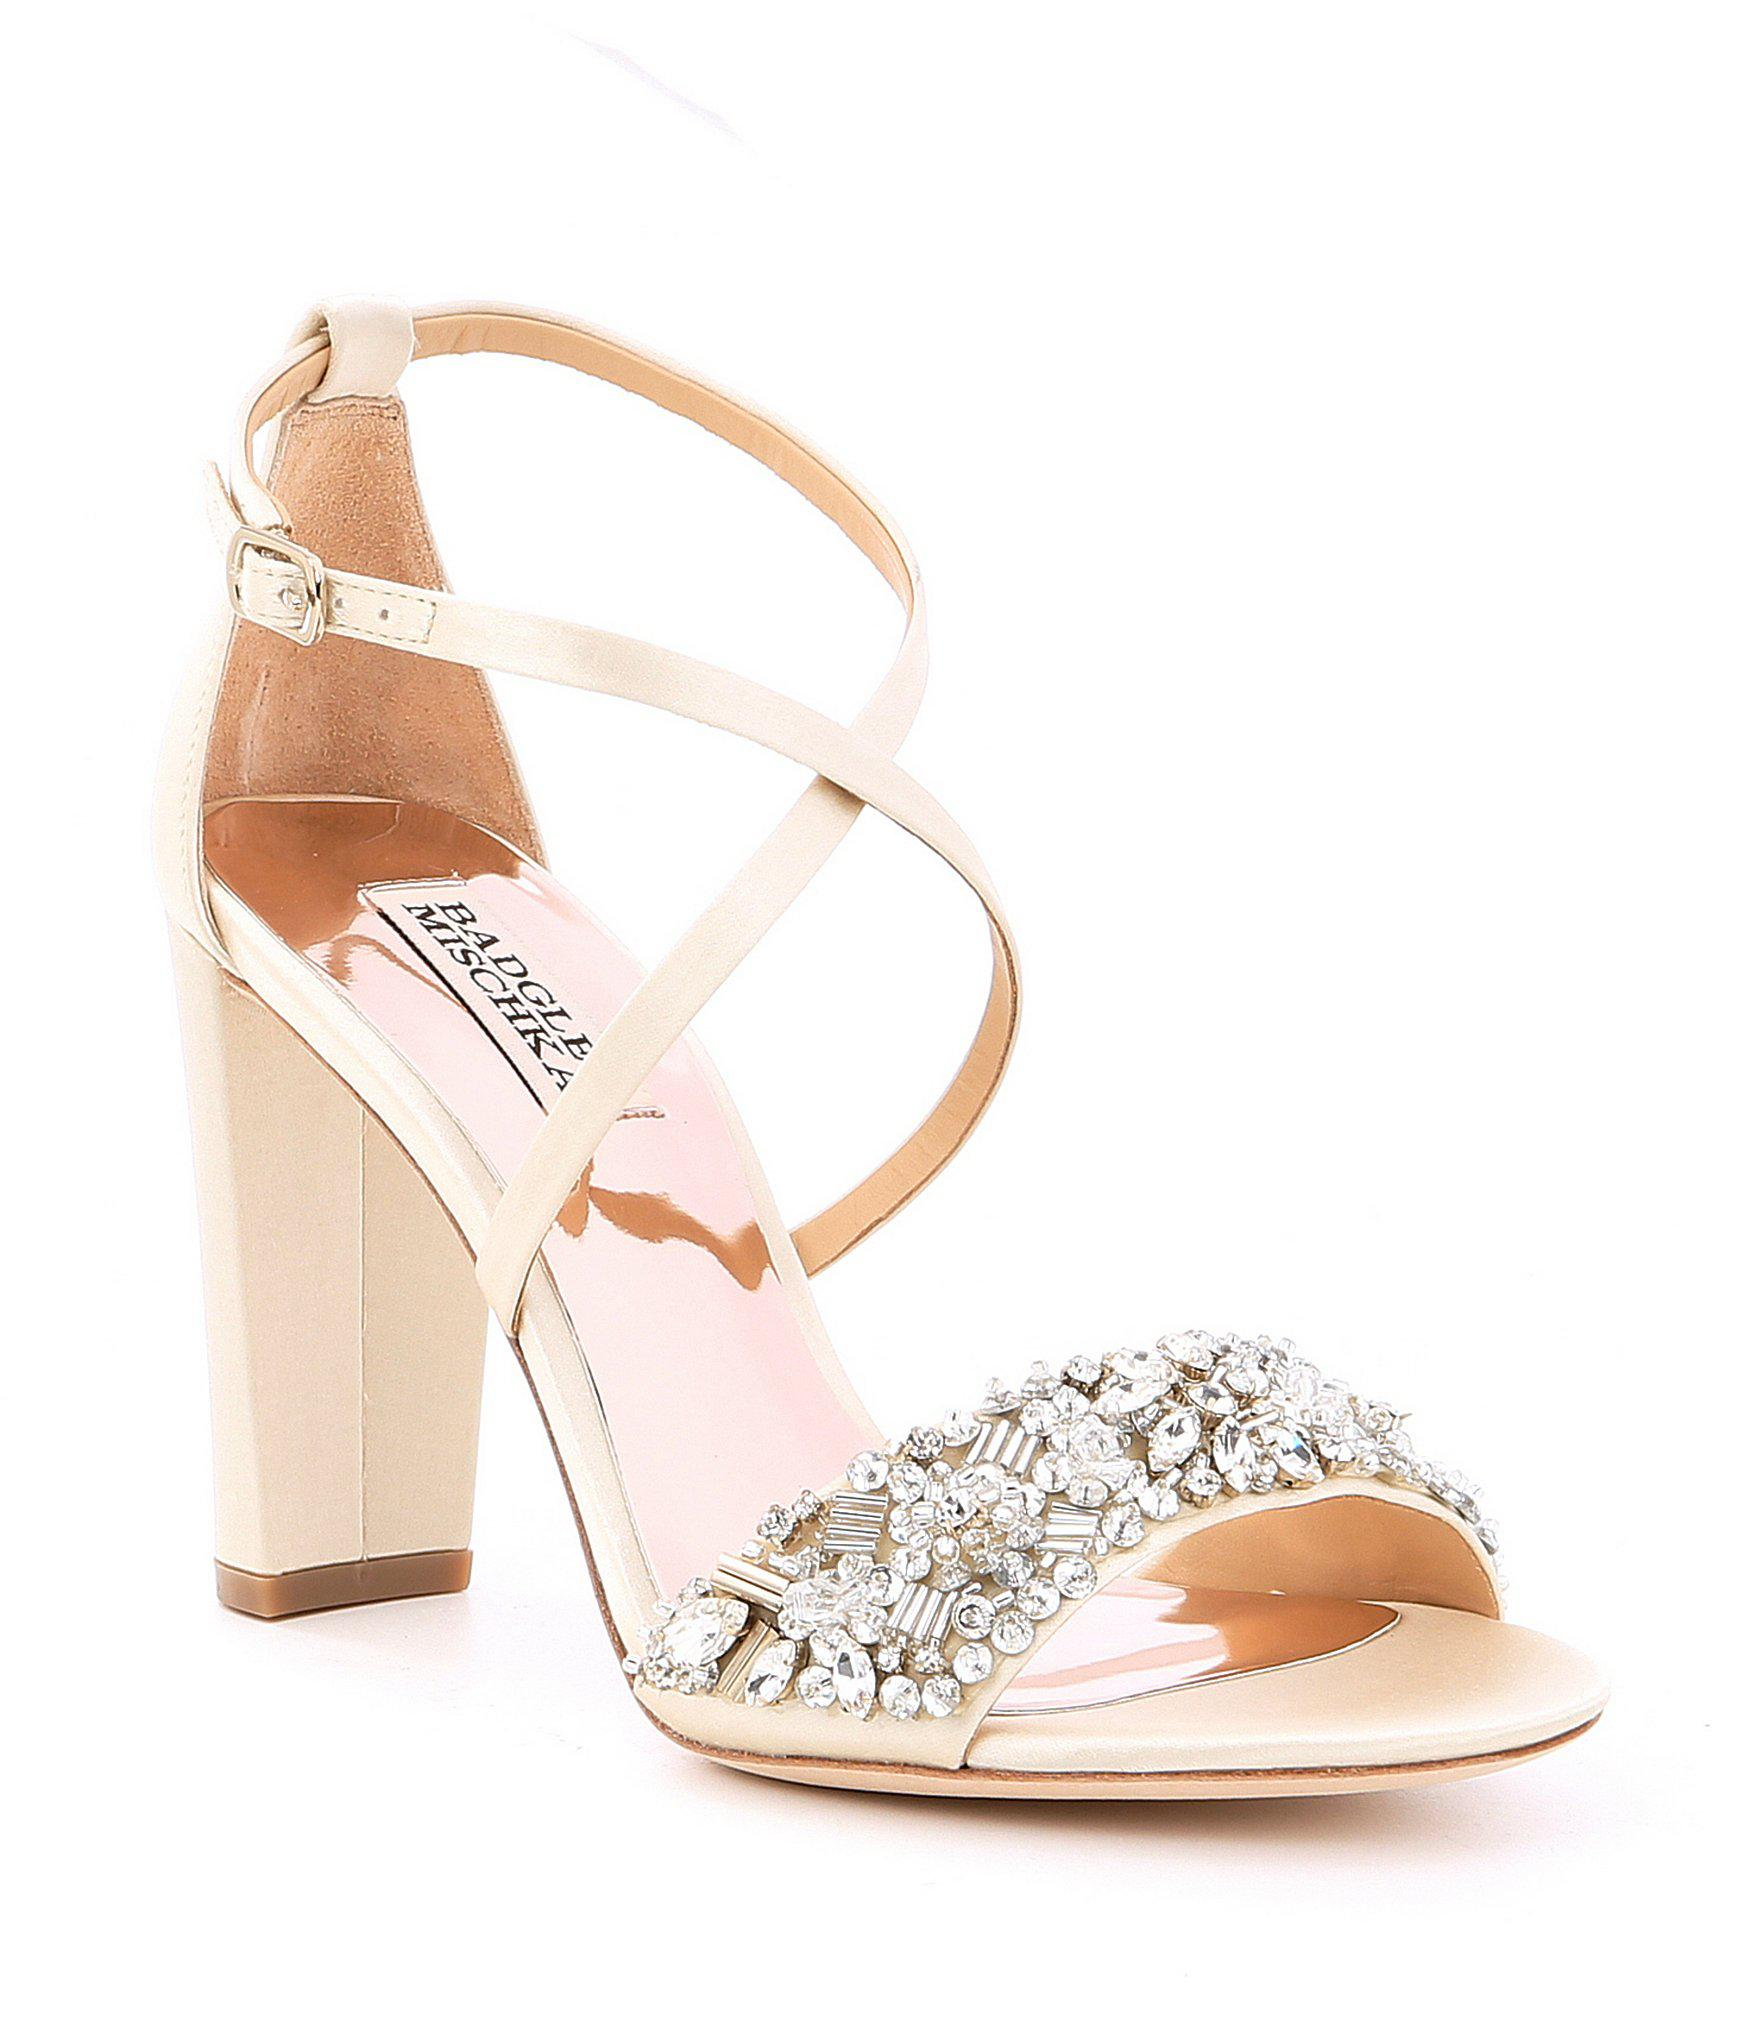 7d8cc7ffdd24 Badgley Mischka. Women s White Sandra Satin Jeweled Strappy Block Heel Dress  Sandals